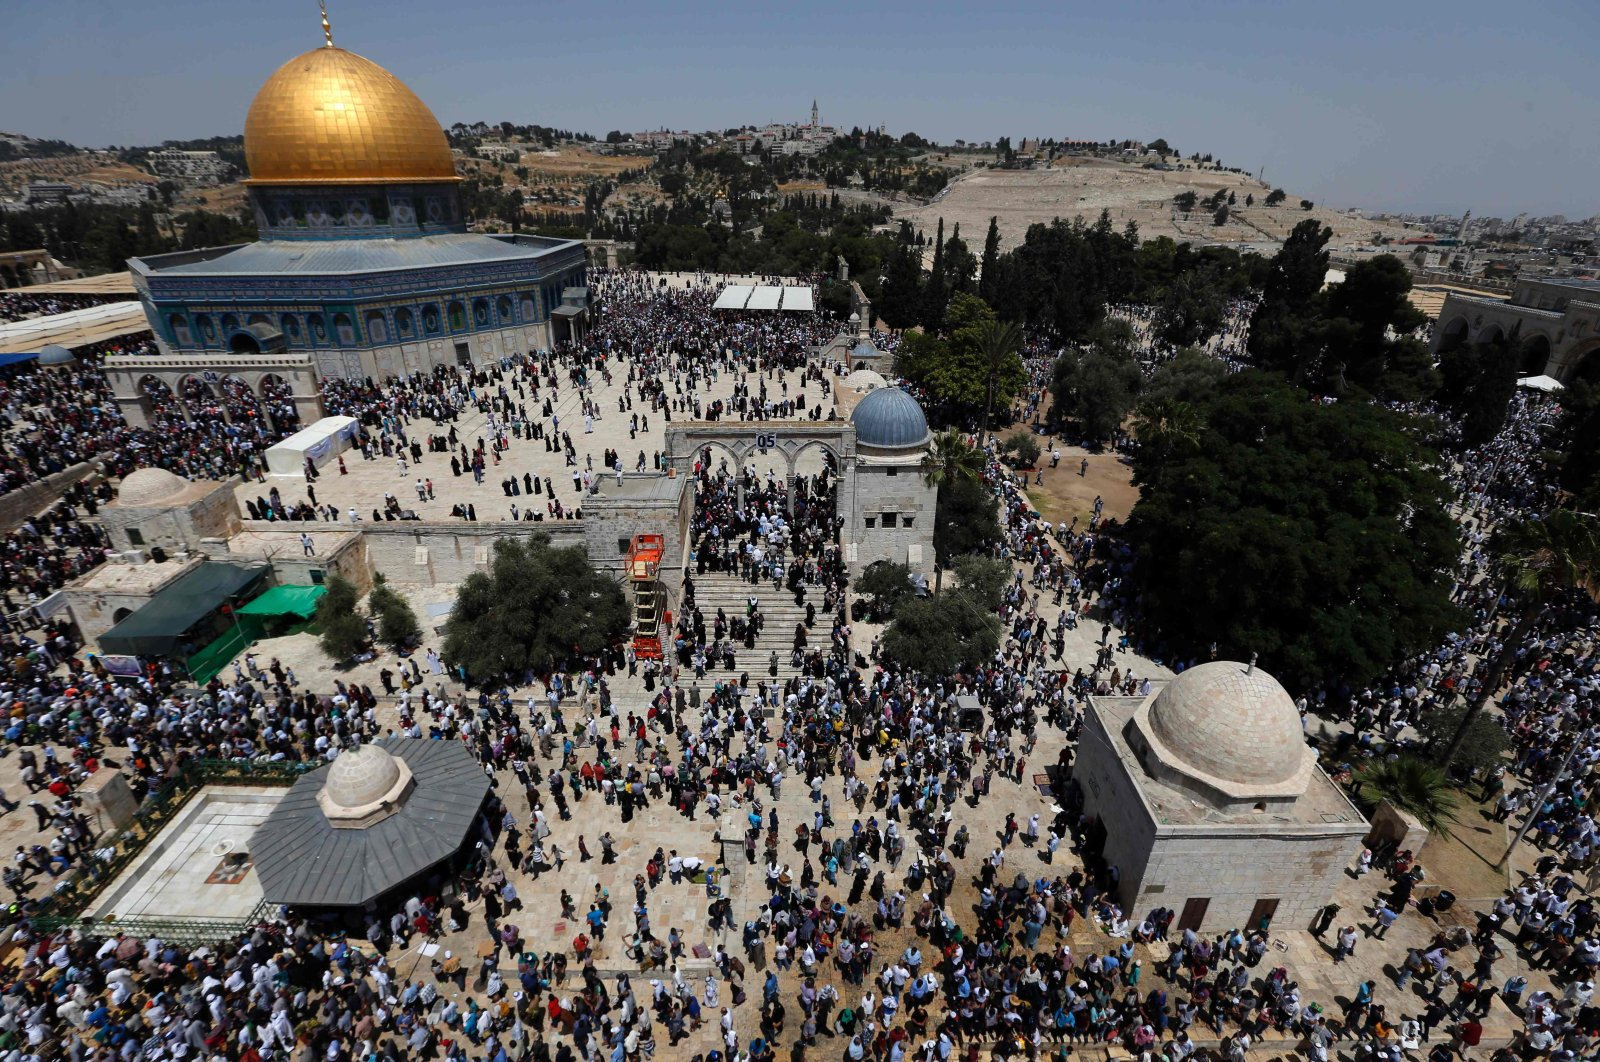 Palestinian Muslim worshippers attend the second Friday prayers of the Muslim holy month of Ramadan at Jerusalem's Al-Aqsa mosque compound on June 9, 2017. (AFP Photo)